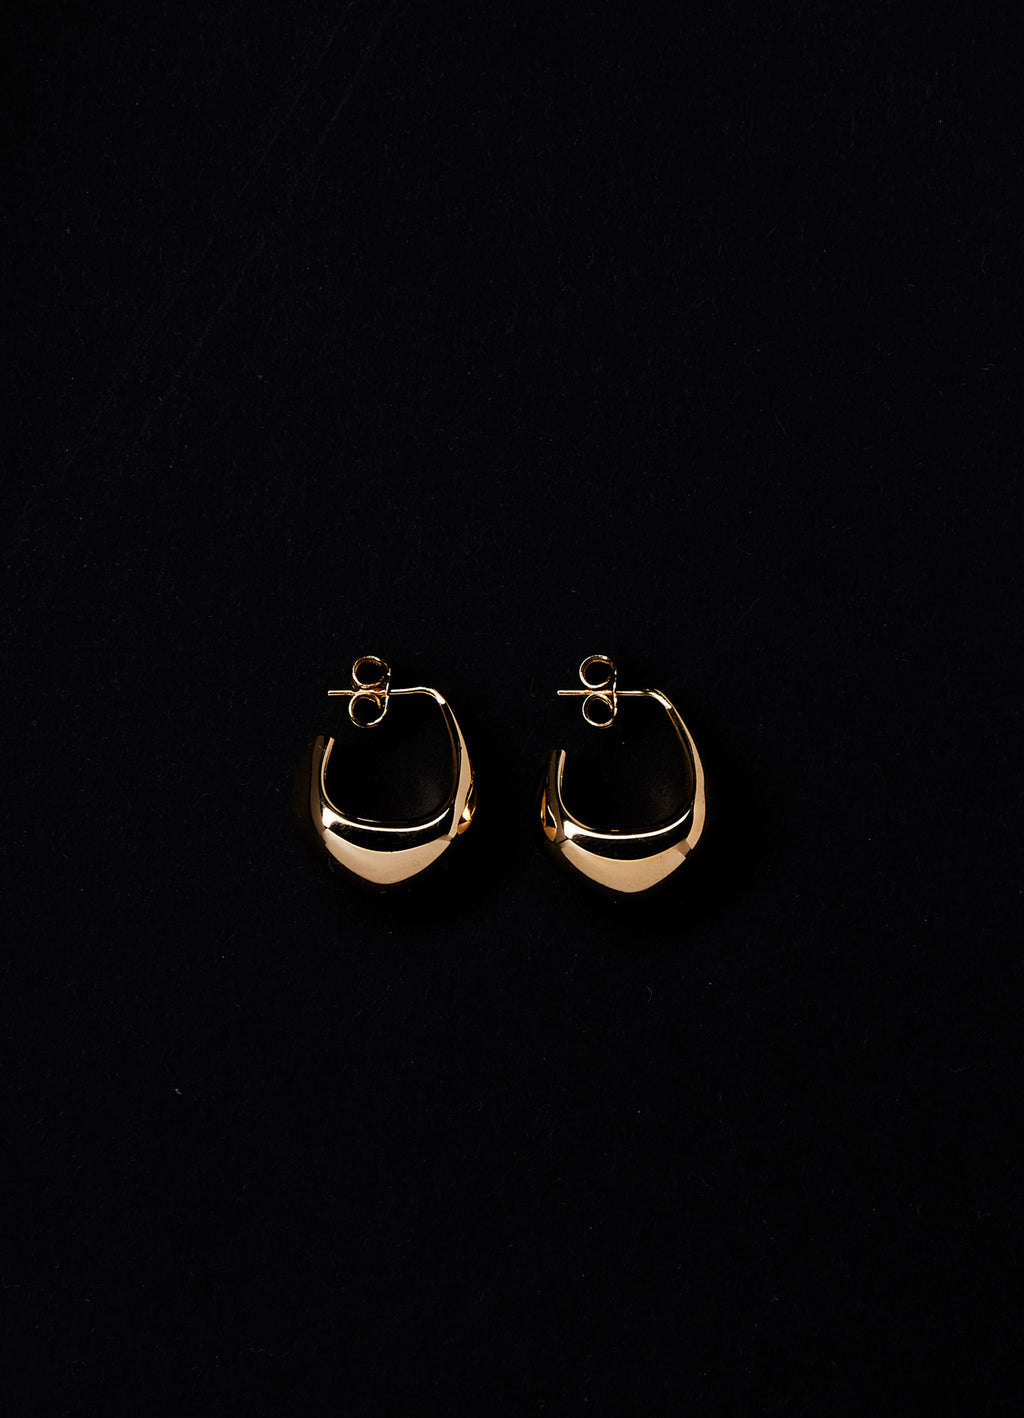 NEW MINI DROP EARRINGS